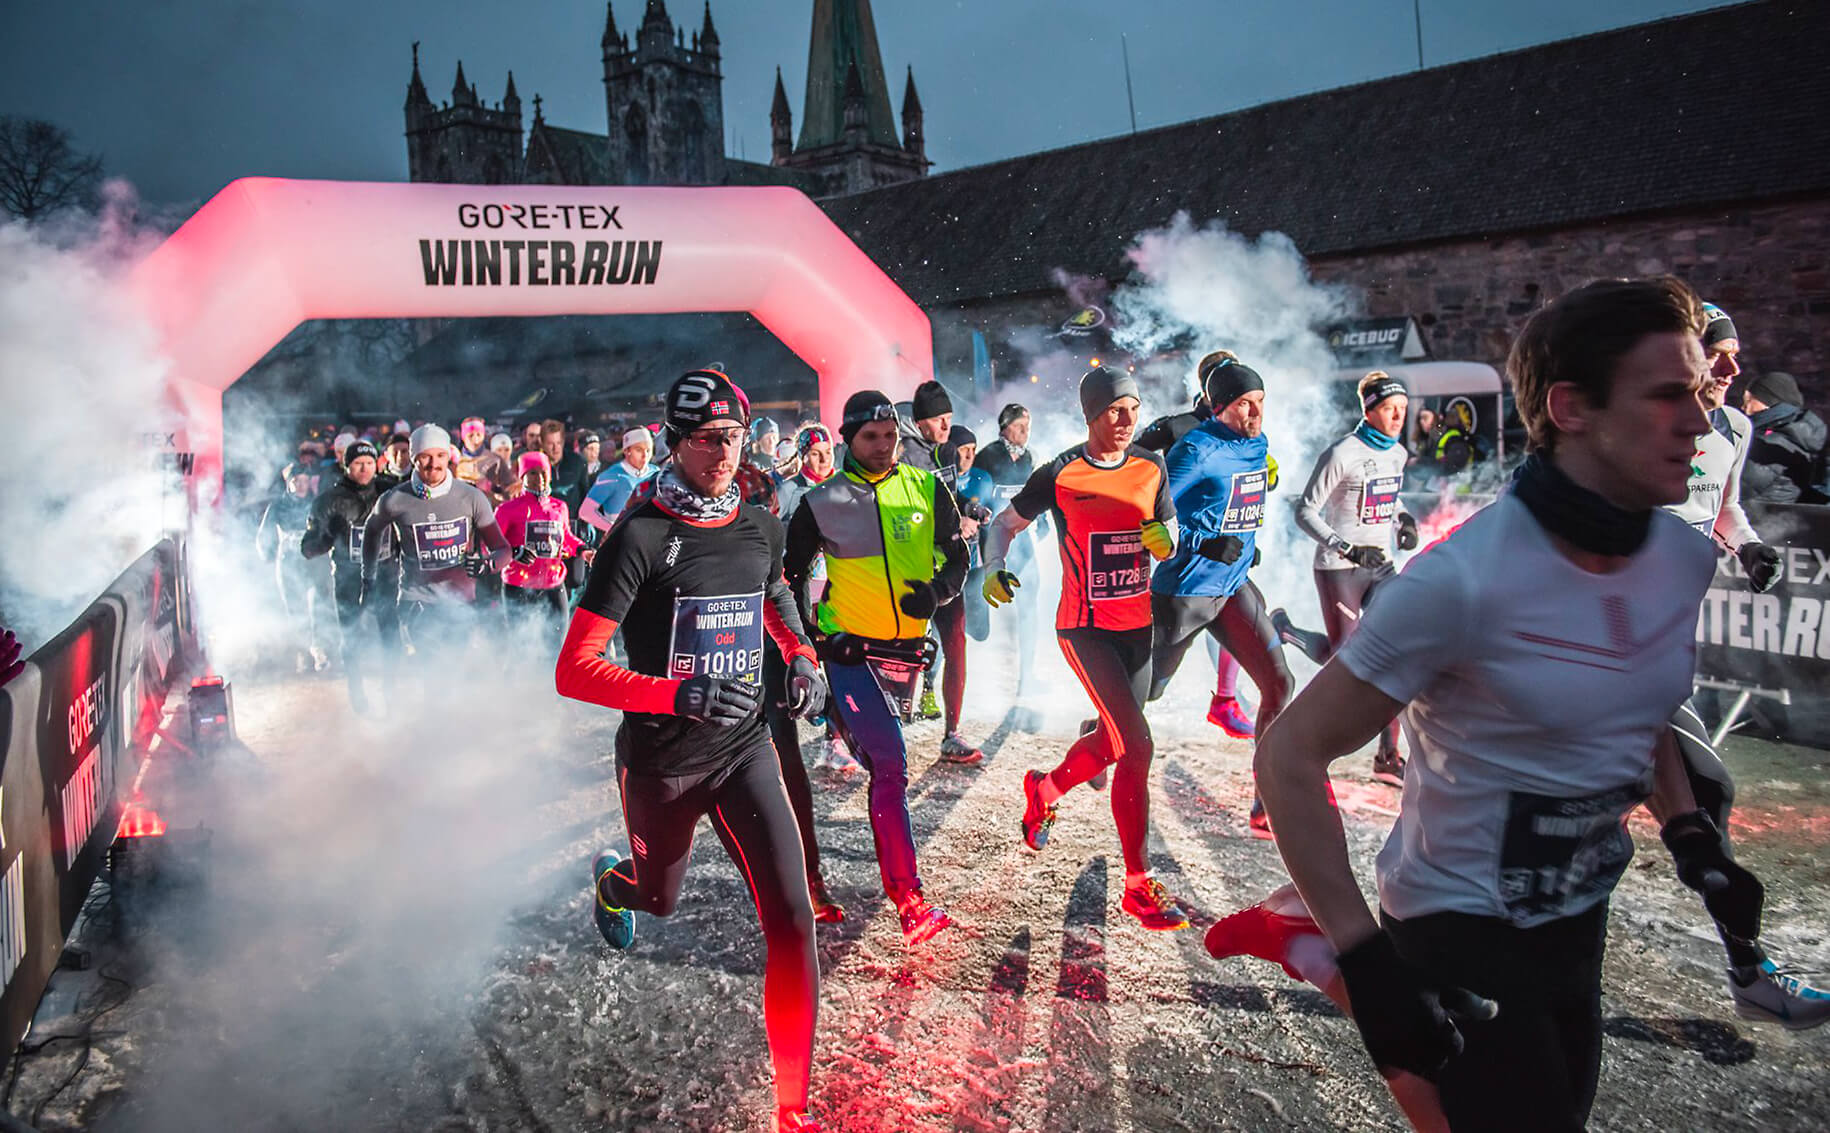 GORE-TEX® Winter Run 2020 Helsinki